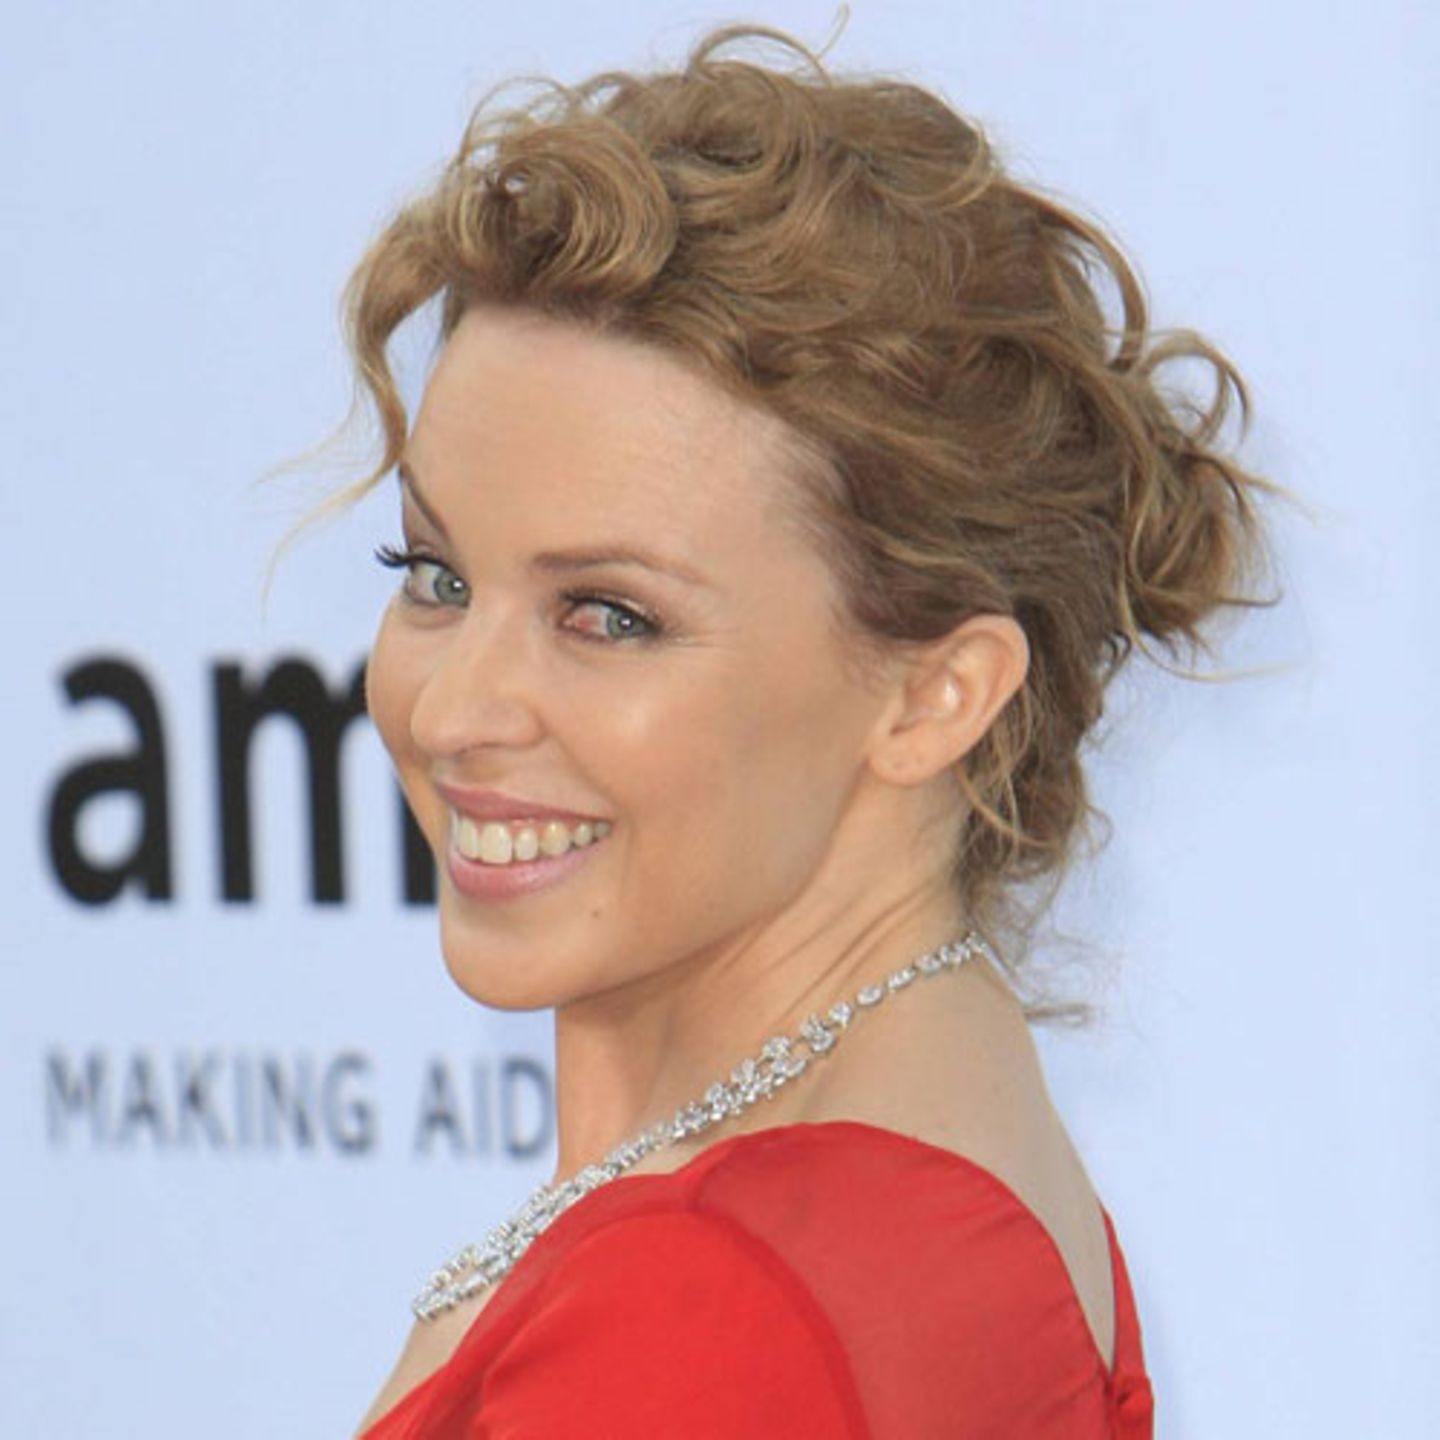 Messy Updo: Kylie Minogue